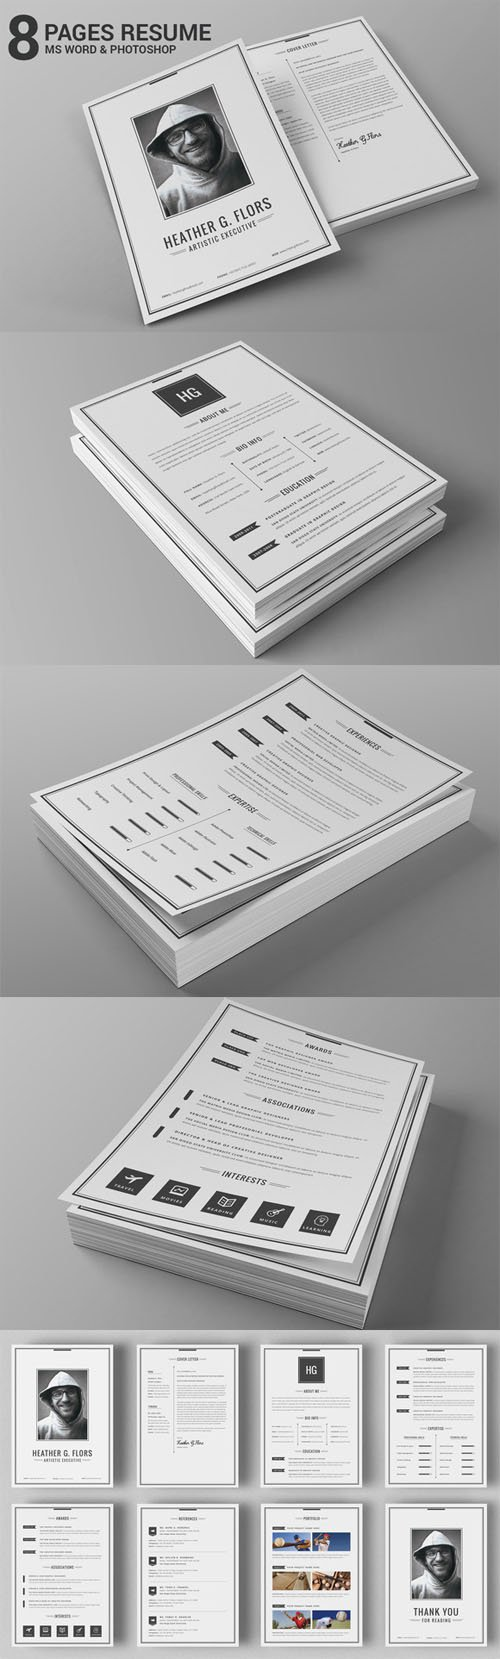 Creativemarket - 8 Pages Extended Resume CV MS Word 170291